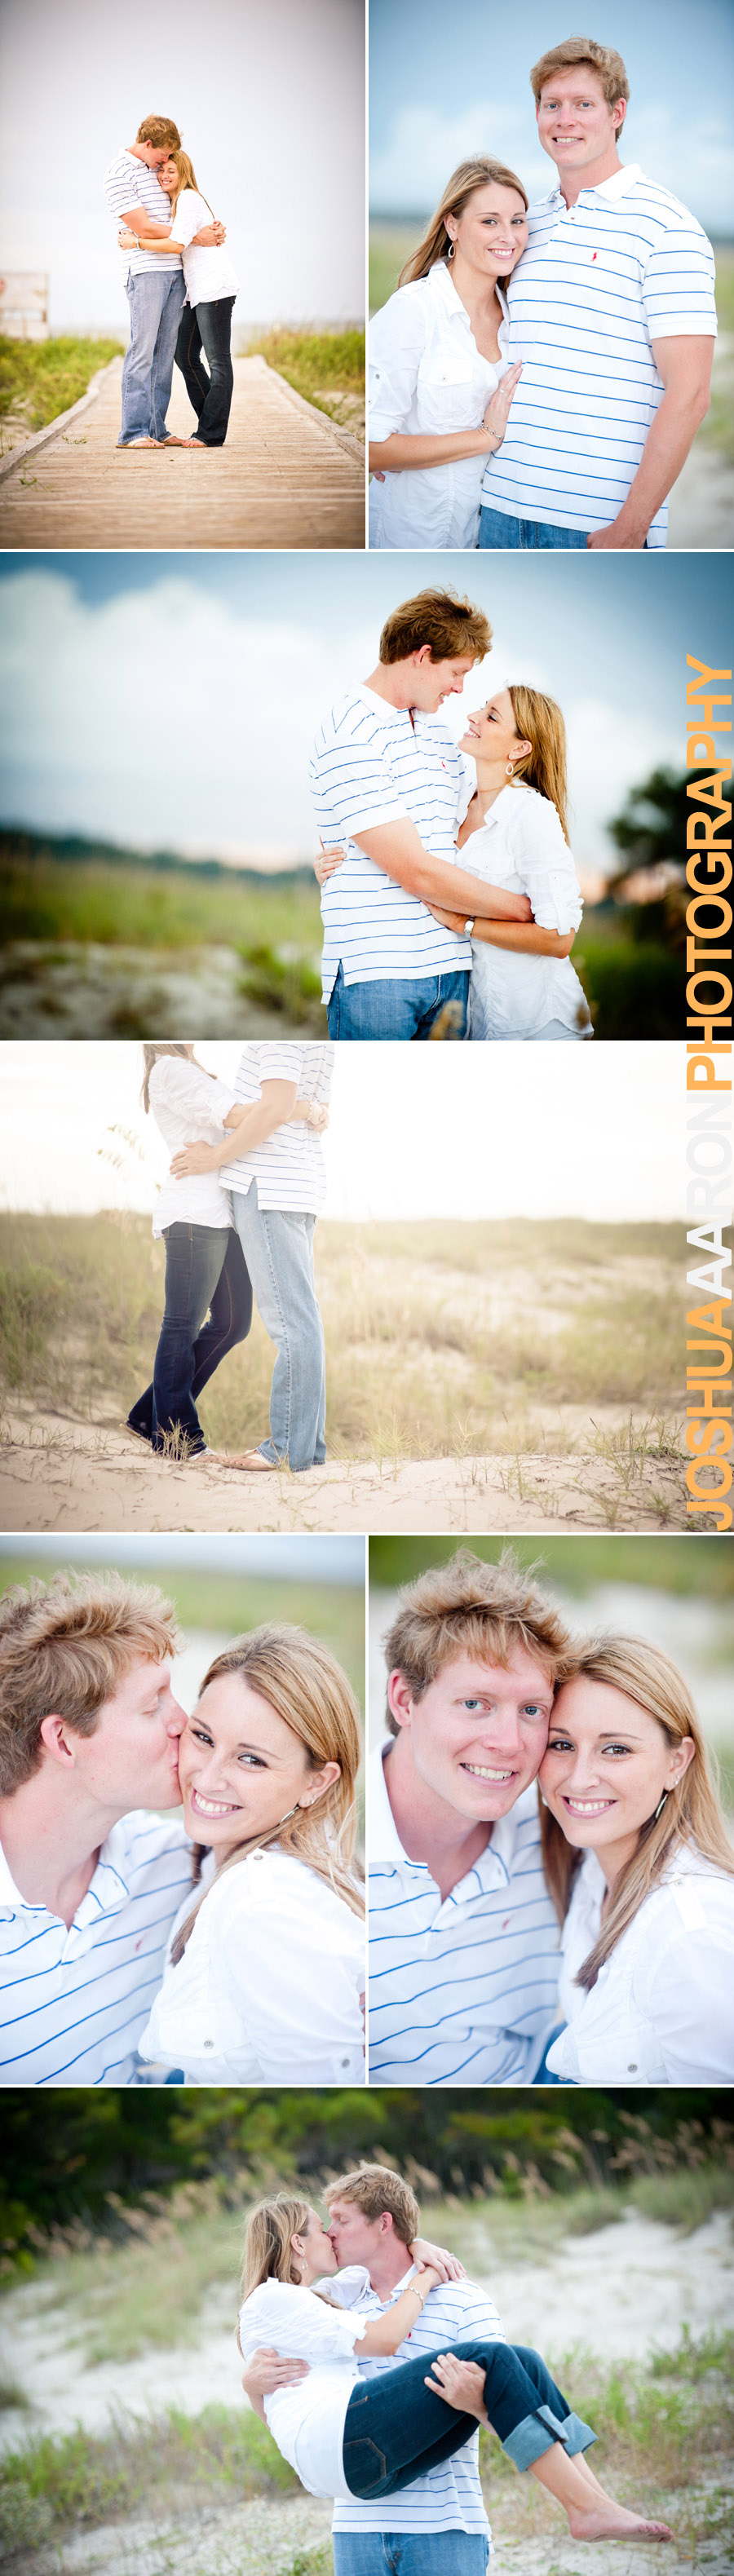 Engagement photo session on Hilton Head Island, SC